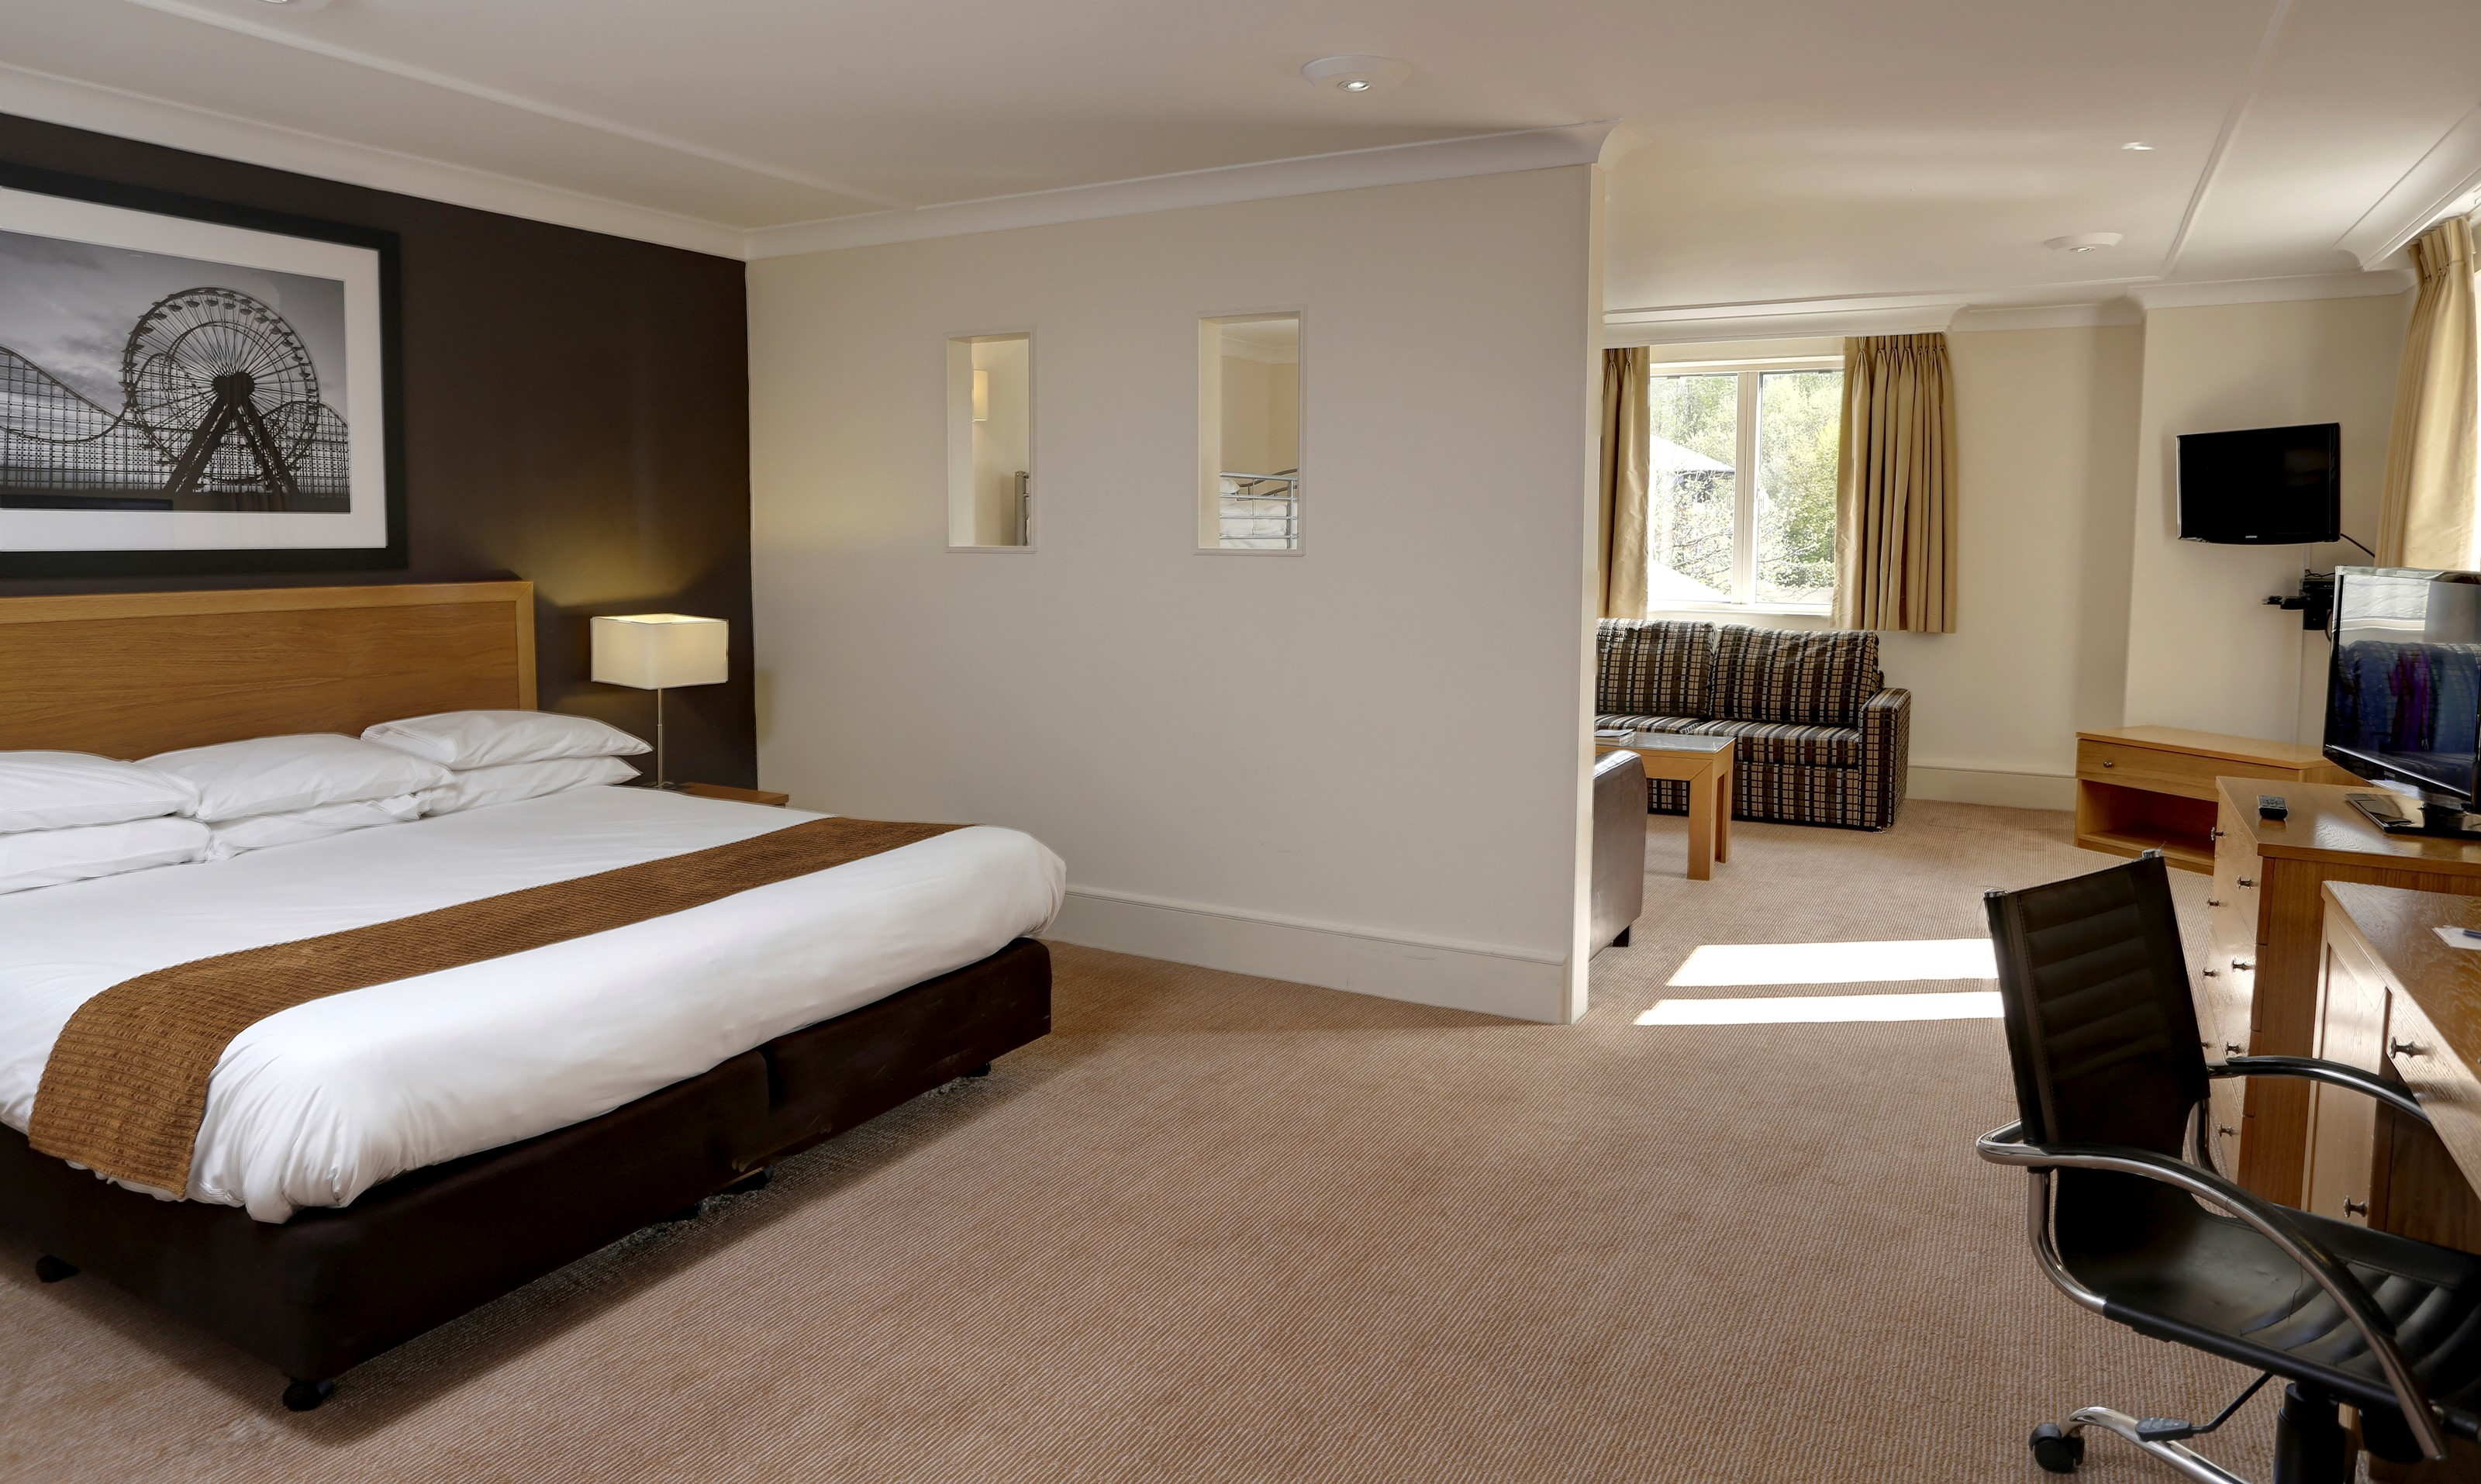 Free Satellite Internet >> Best Western Plus Stoke On Trent Moat House - Stoke on Trent